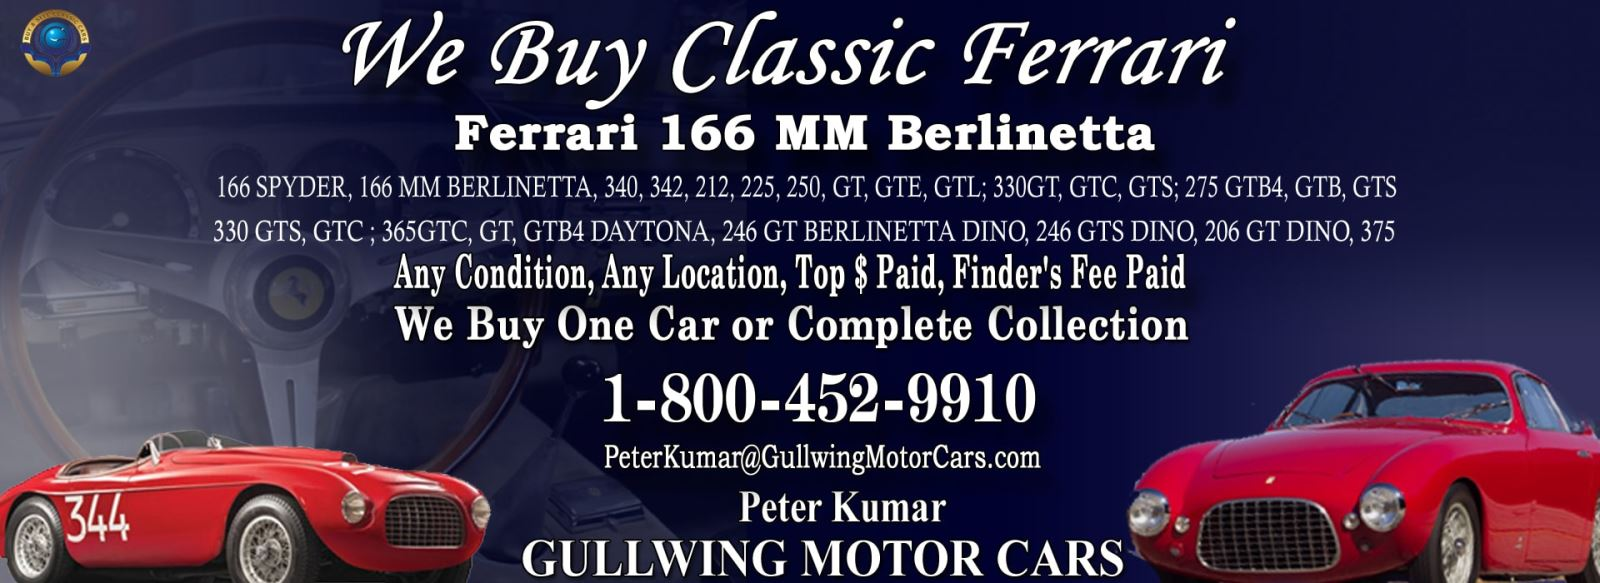 Classic Ferrari 166 MM for sale, we buy vintage Ferrari 166MM. Call Peter Kumar. Gullwing Motor